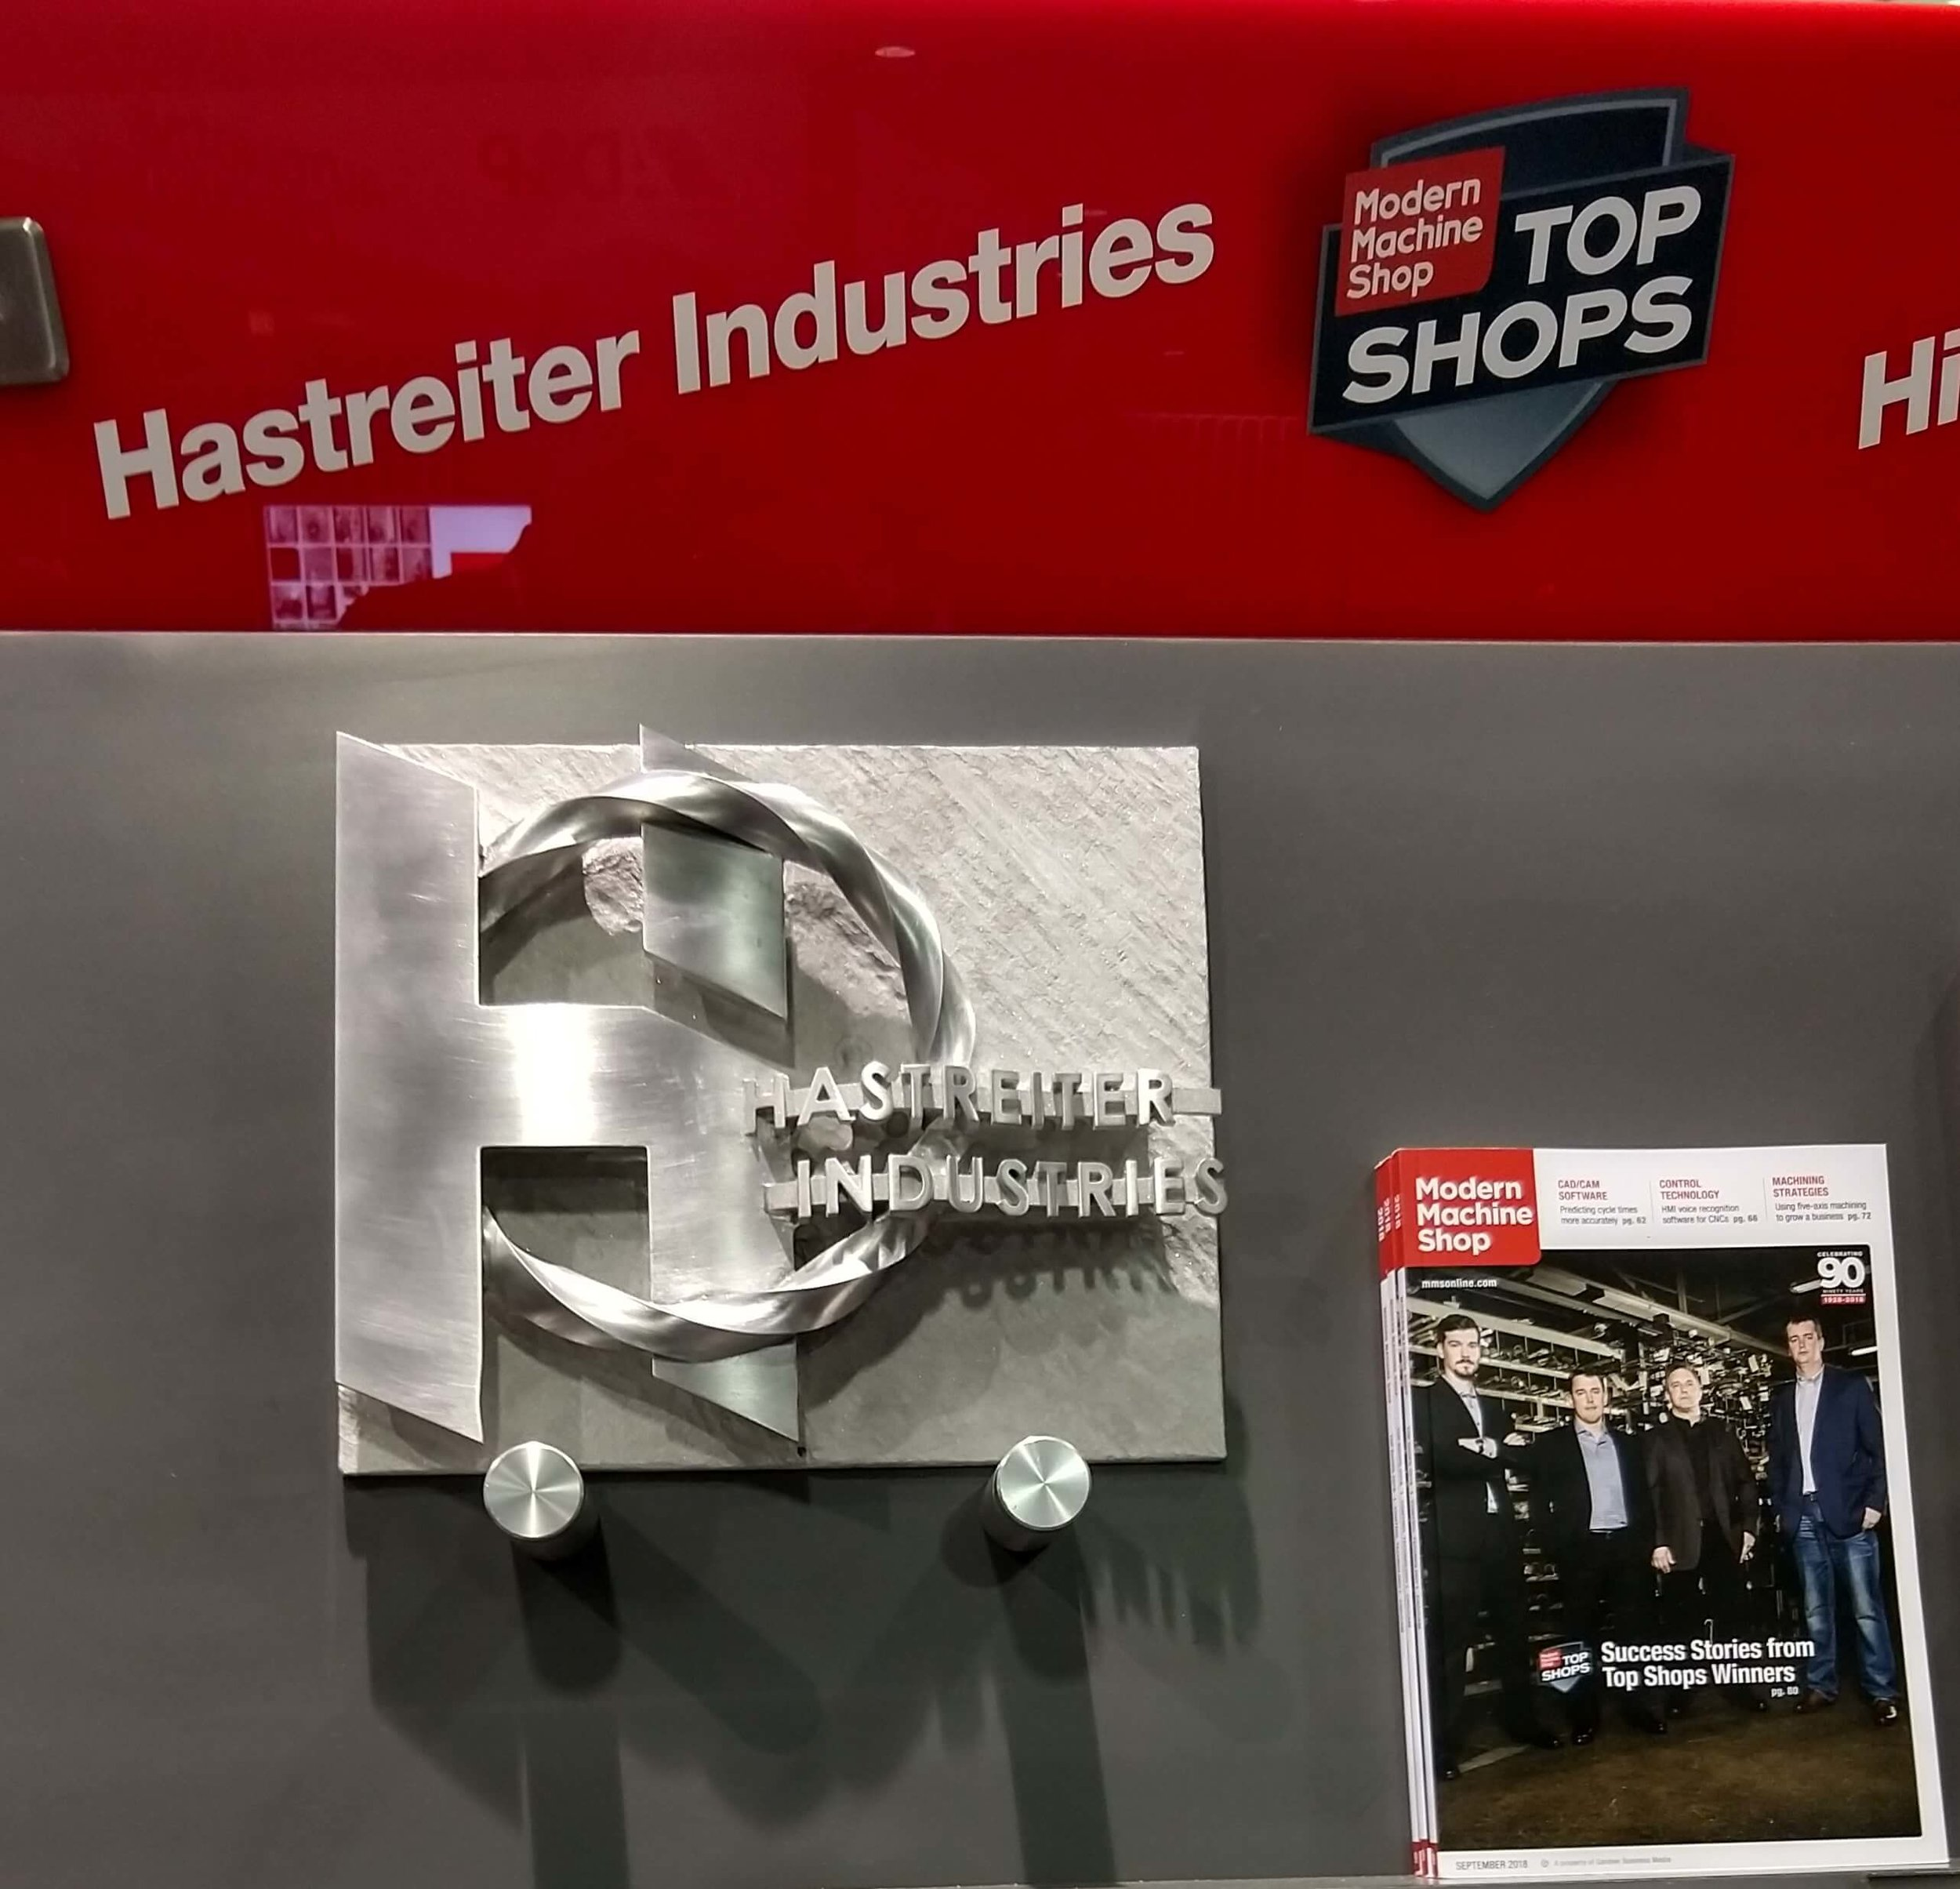 Modern Machine Shop  magazine awarded Hastreiter Industries as a Top Shop. By using 5 axis milling, we machined the logo in one operation to be displayed in the Top Shop Hall of Fame.